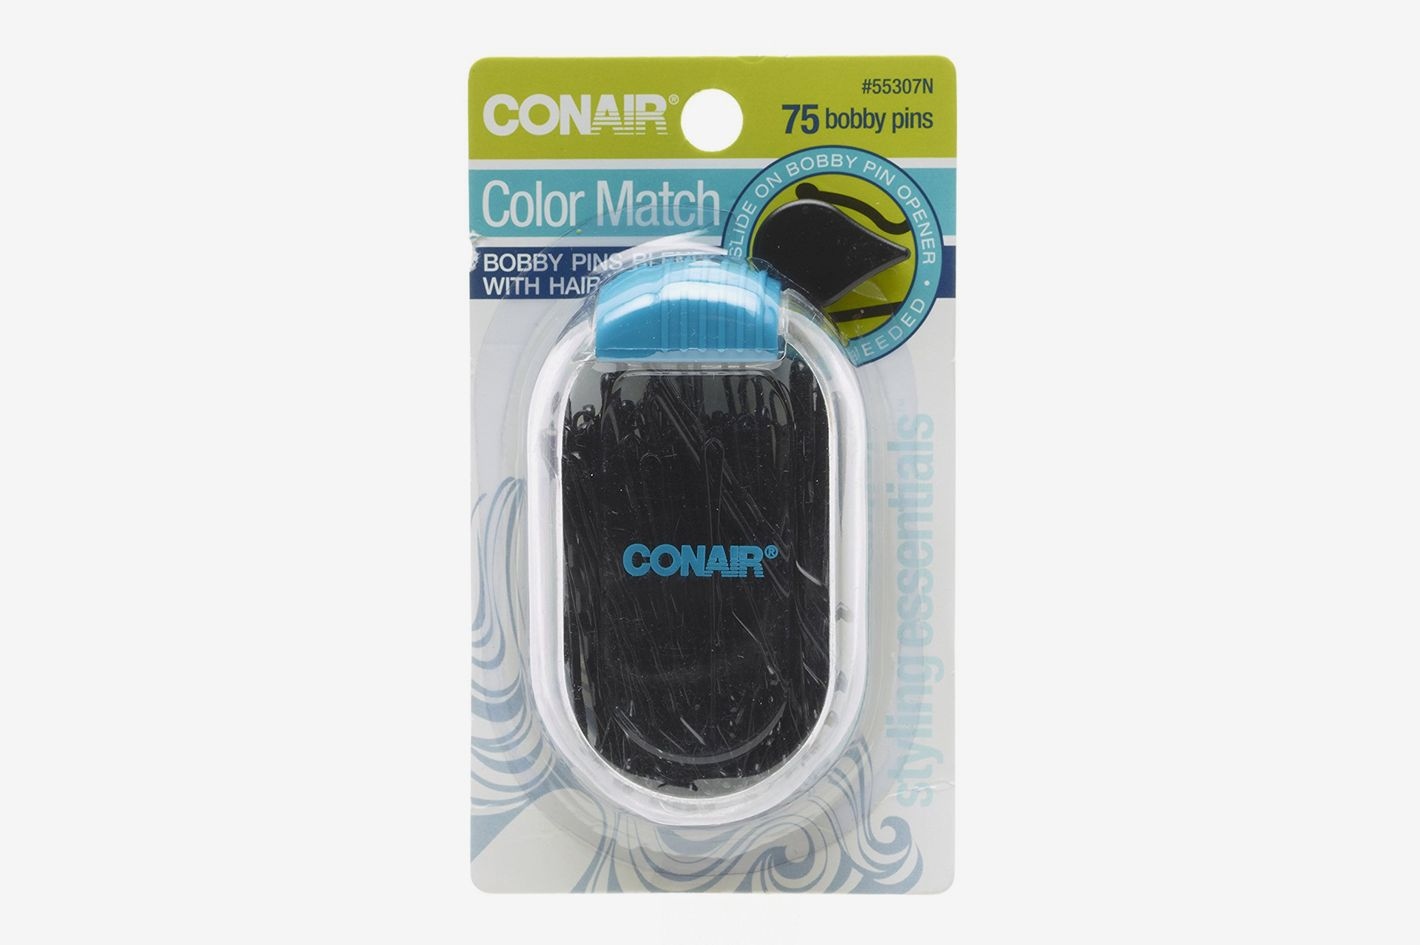 Conair Color Match Bobby Pins